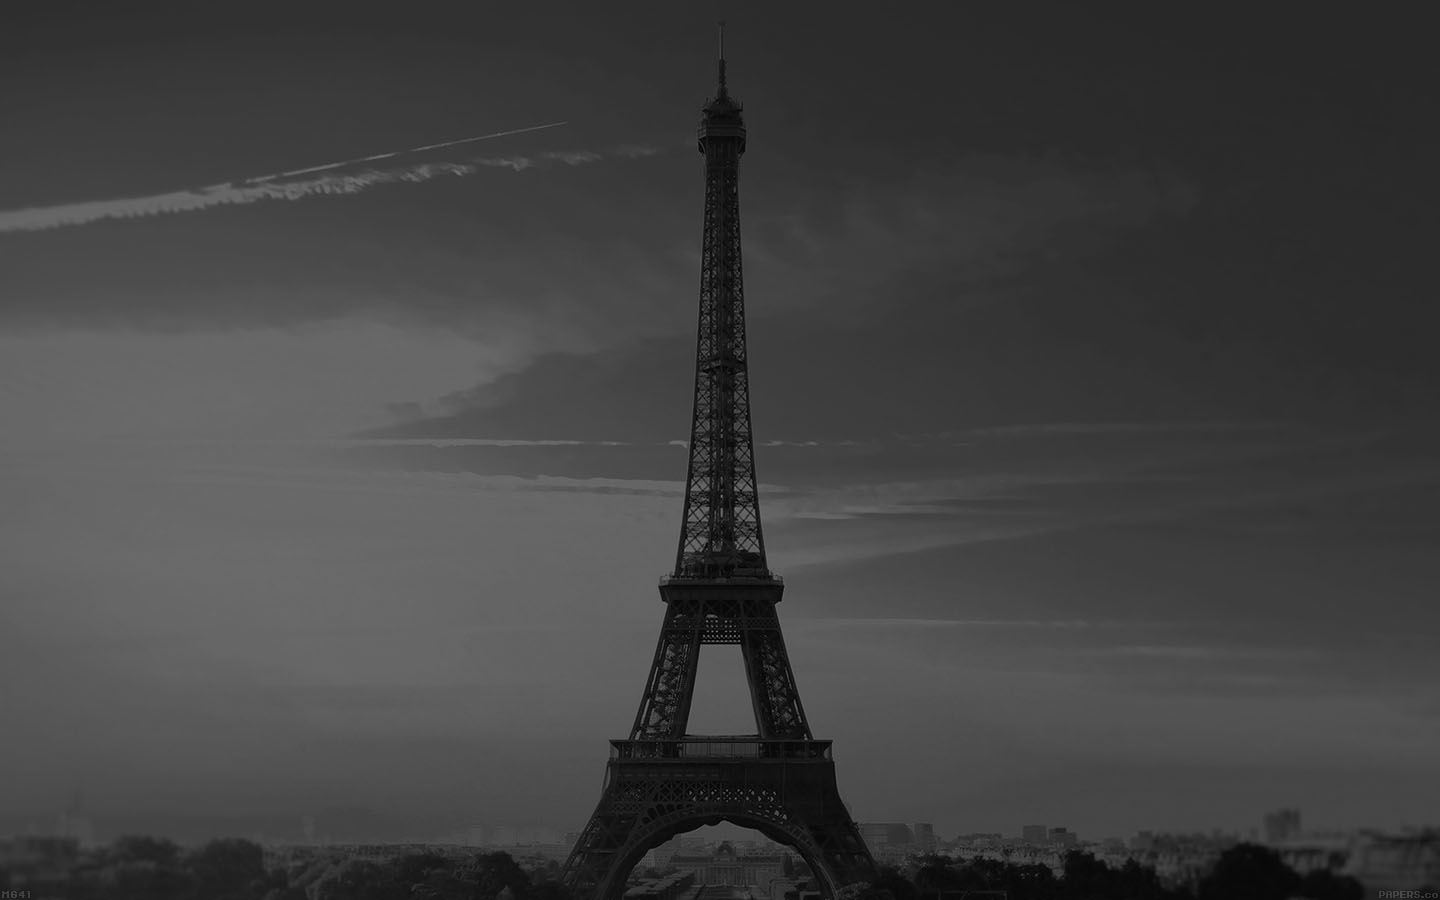 Paris Wallpaper Cute For Iphone Mg41 City Of Love Paris Eiffel Tower France Black And